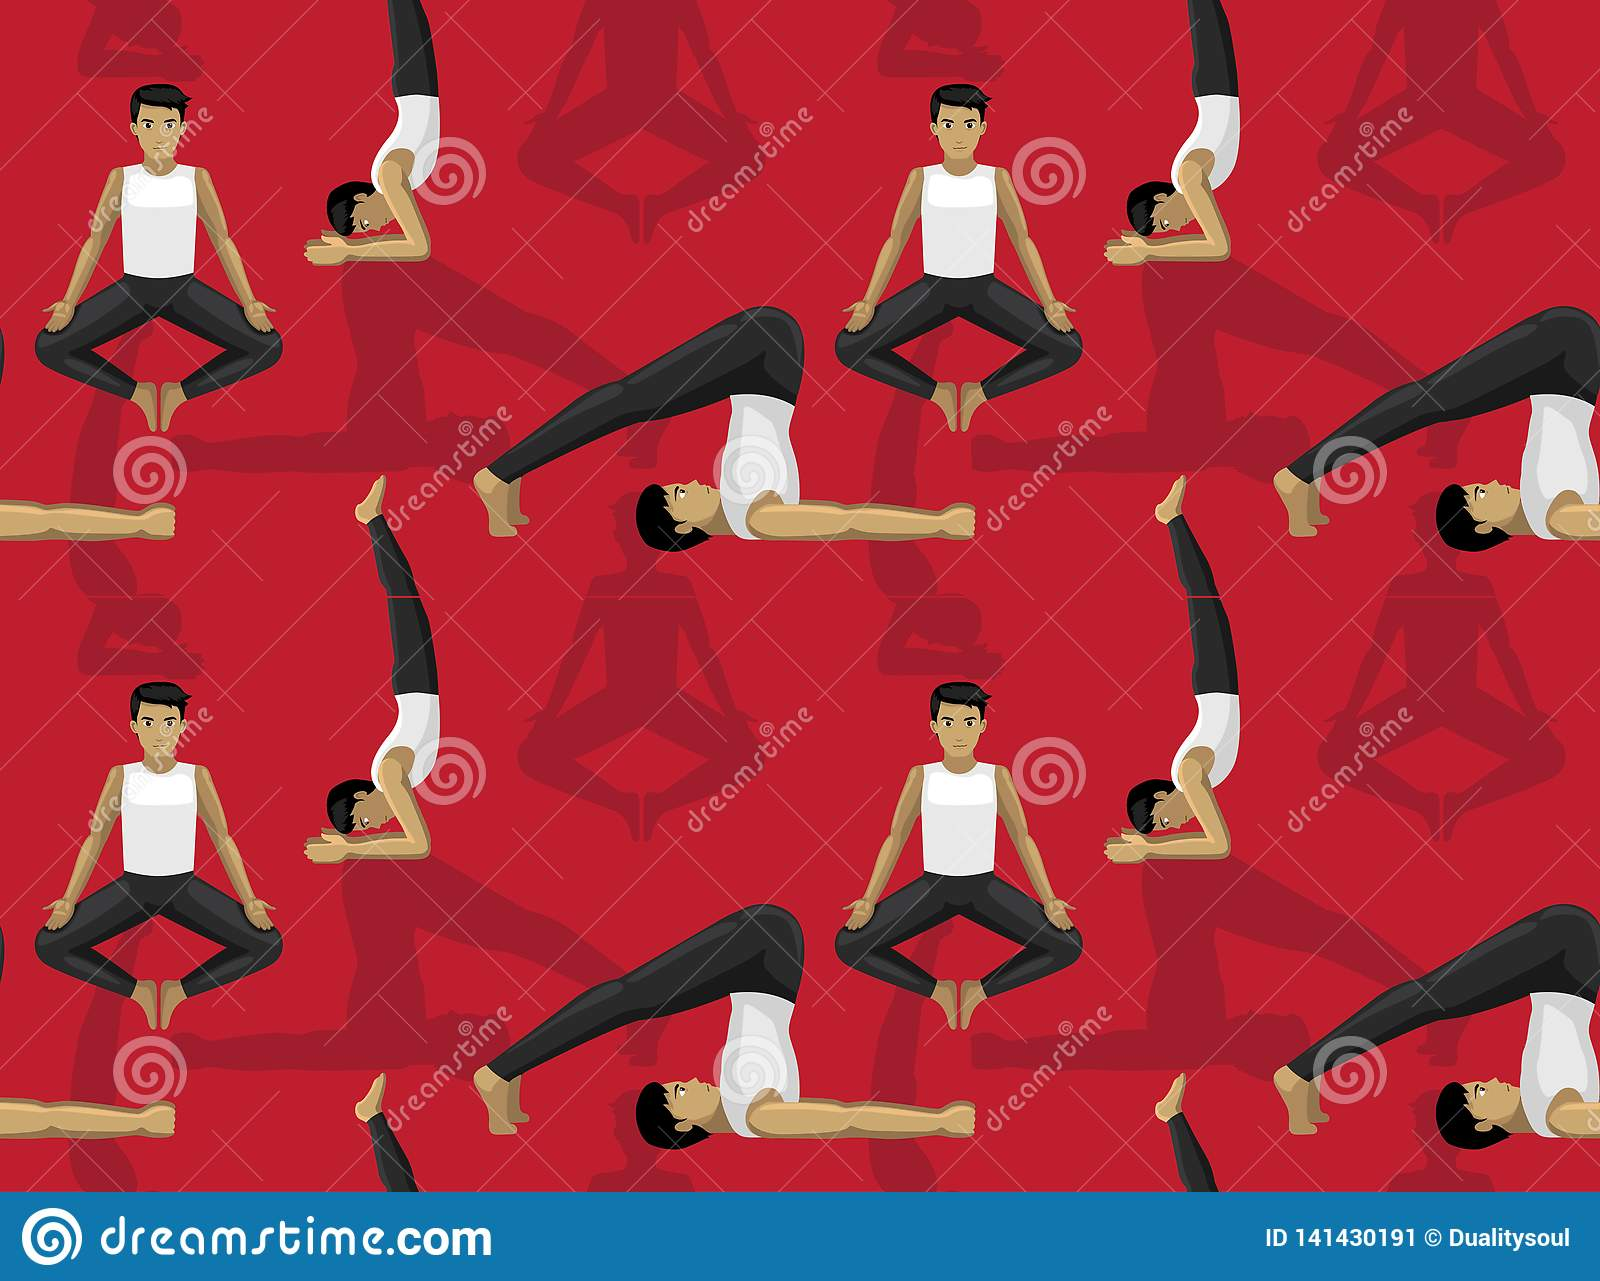 Manga Yoga Plow Pose Man Cartoon Background Seamless Wallpaper Stock Vector Illustration Of Pattern Background 141430191